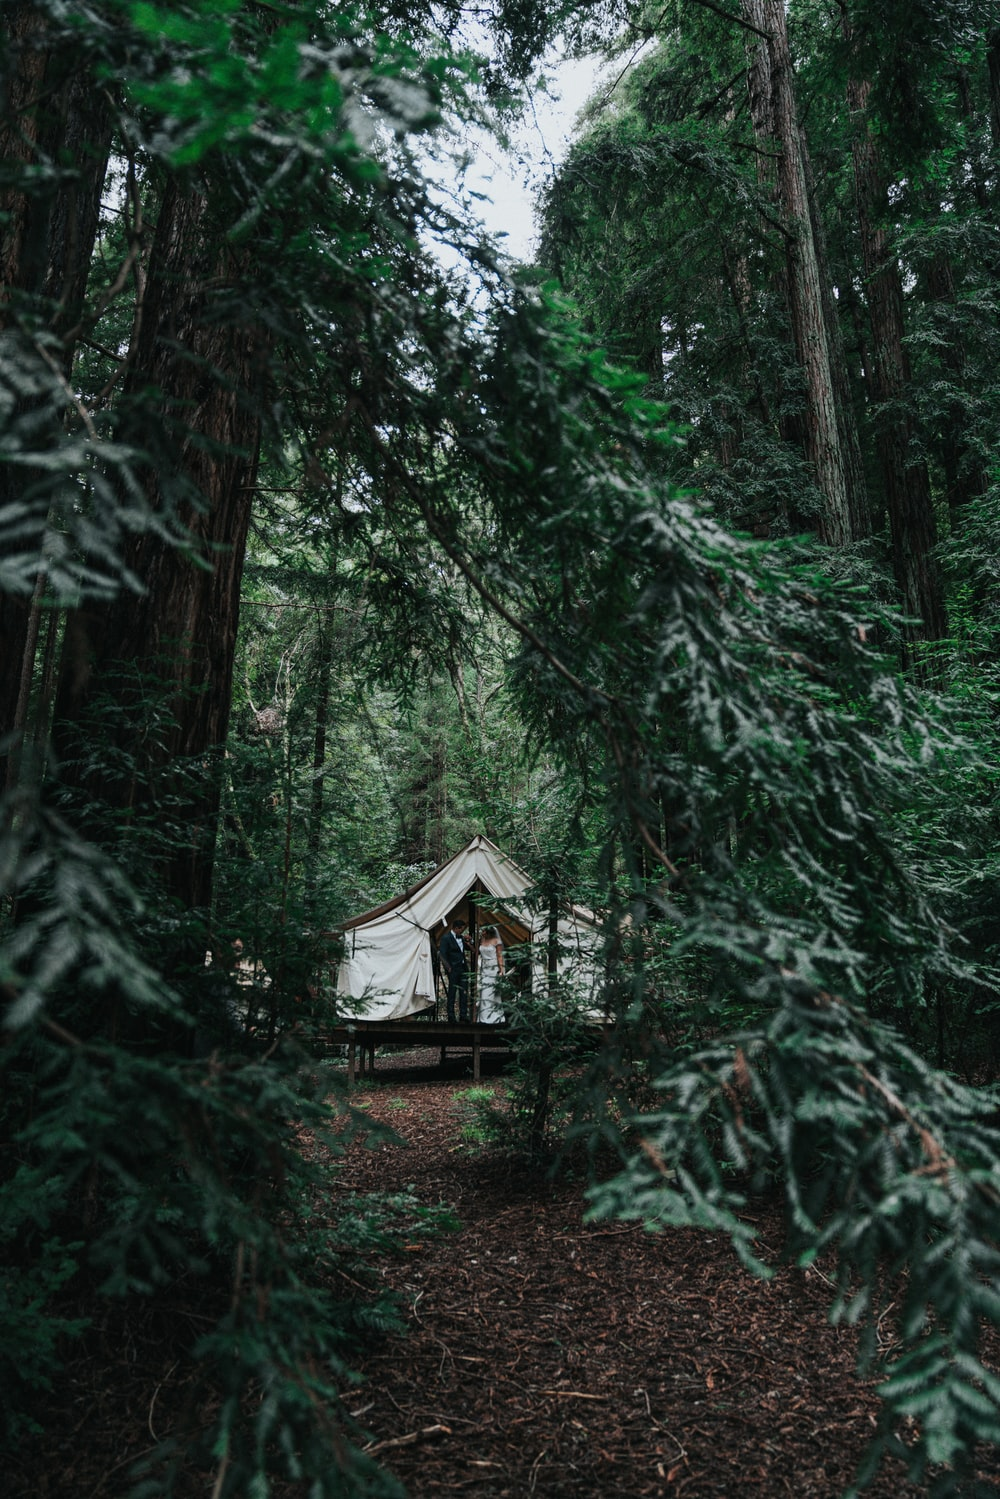 white canopy tent in middle of forest